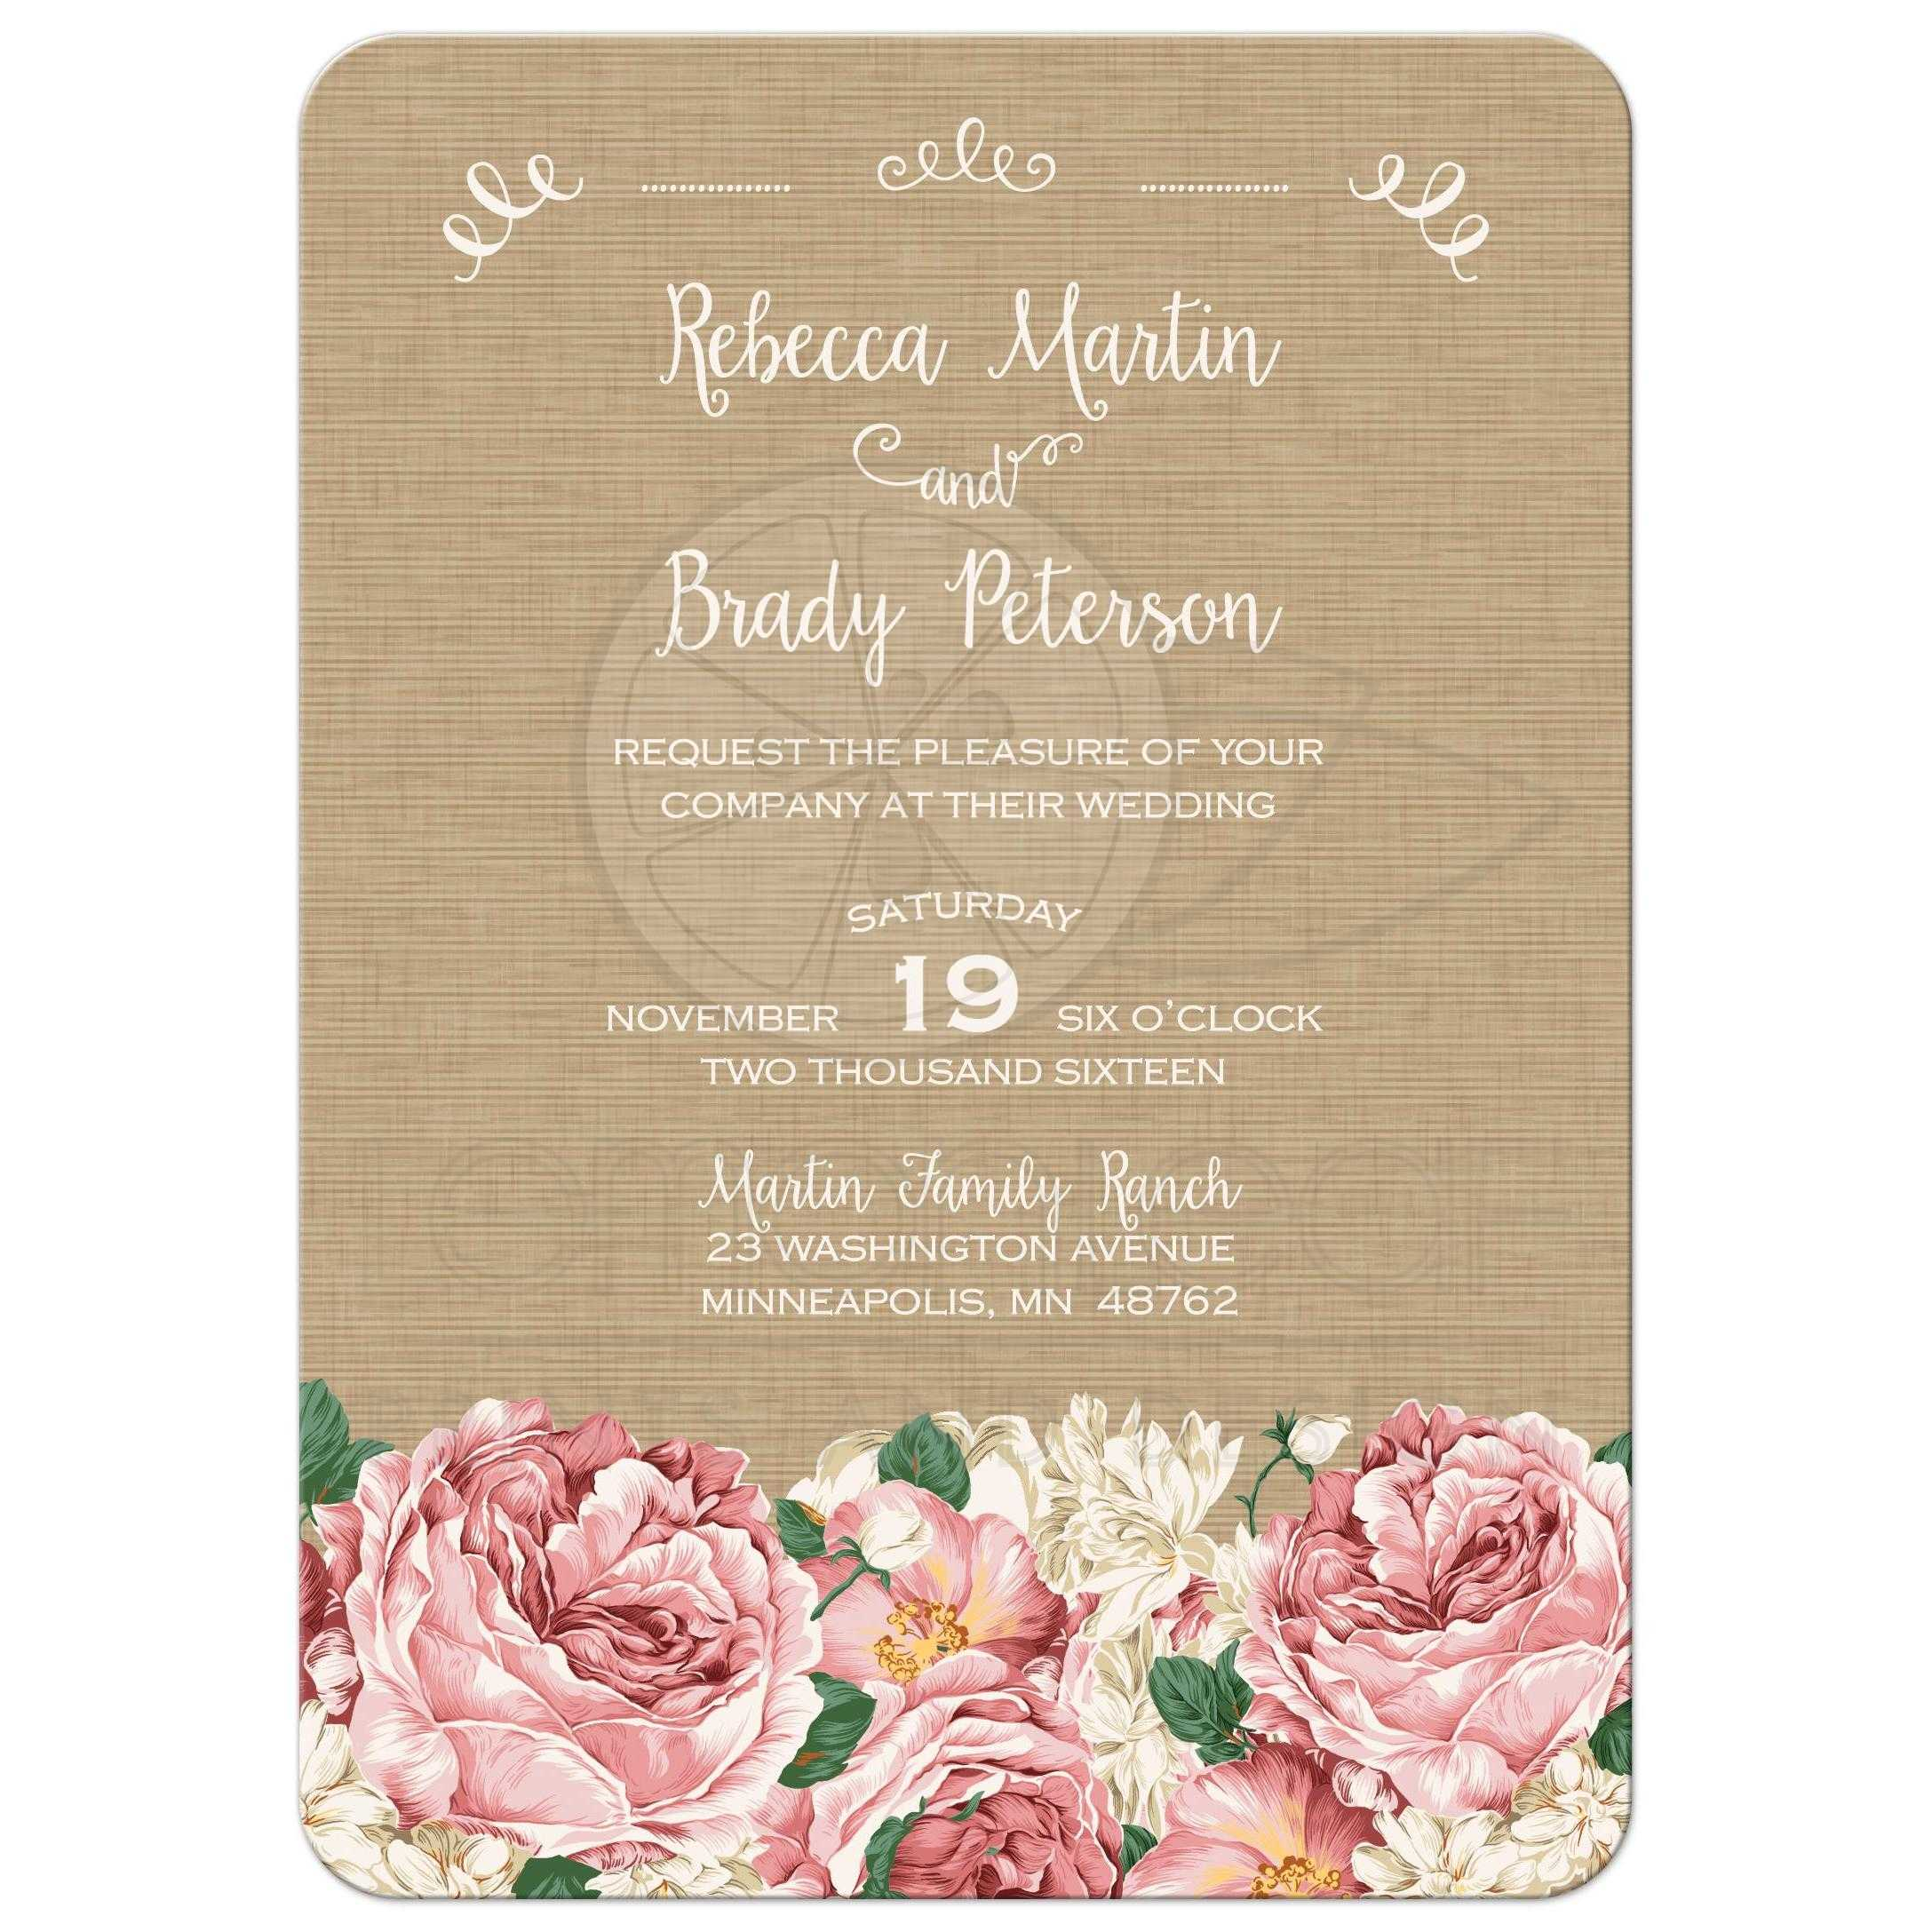 Wedding Invitation - Rustic Pink Peony Flowers on Canvas Texture